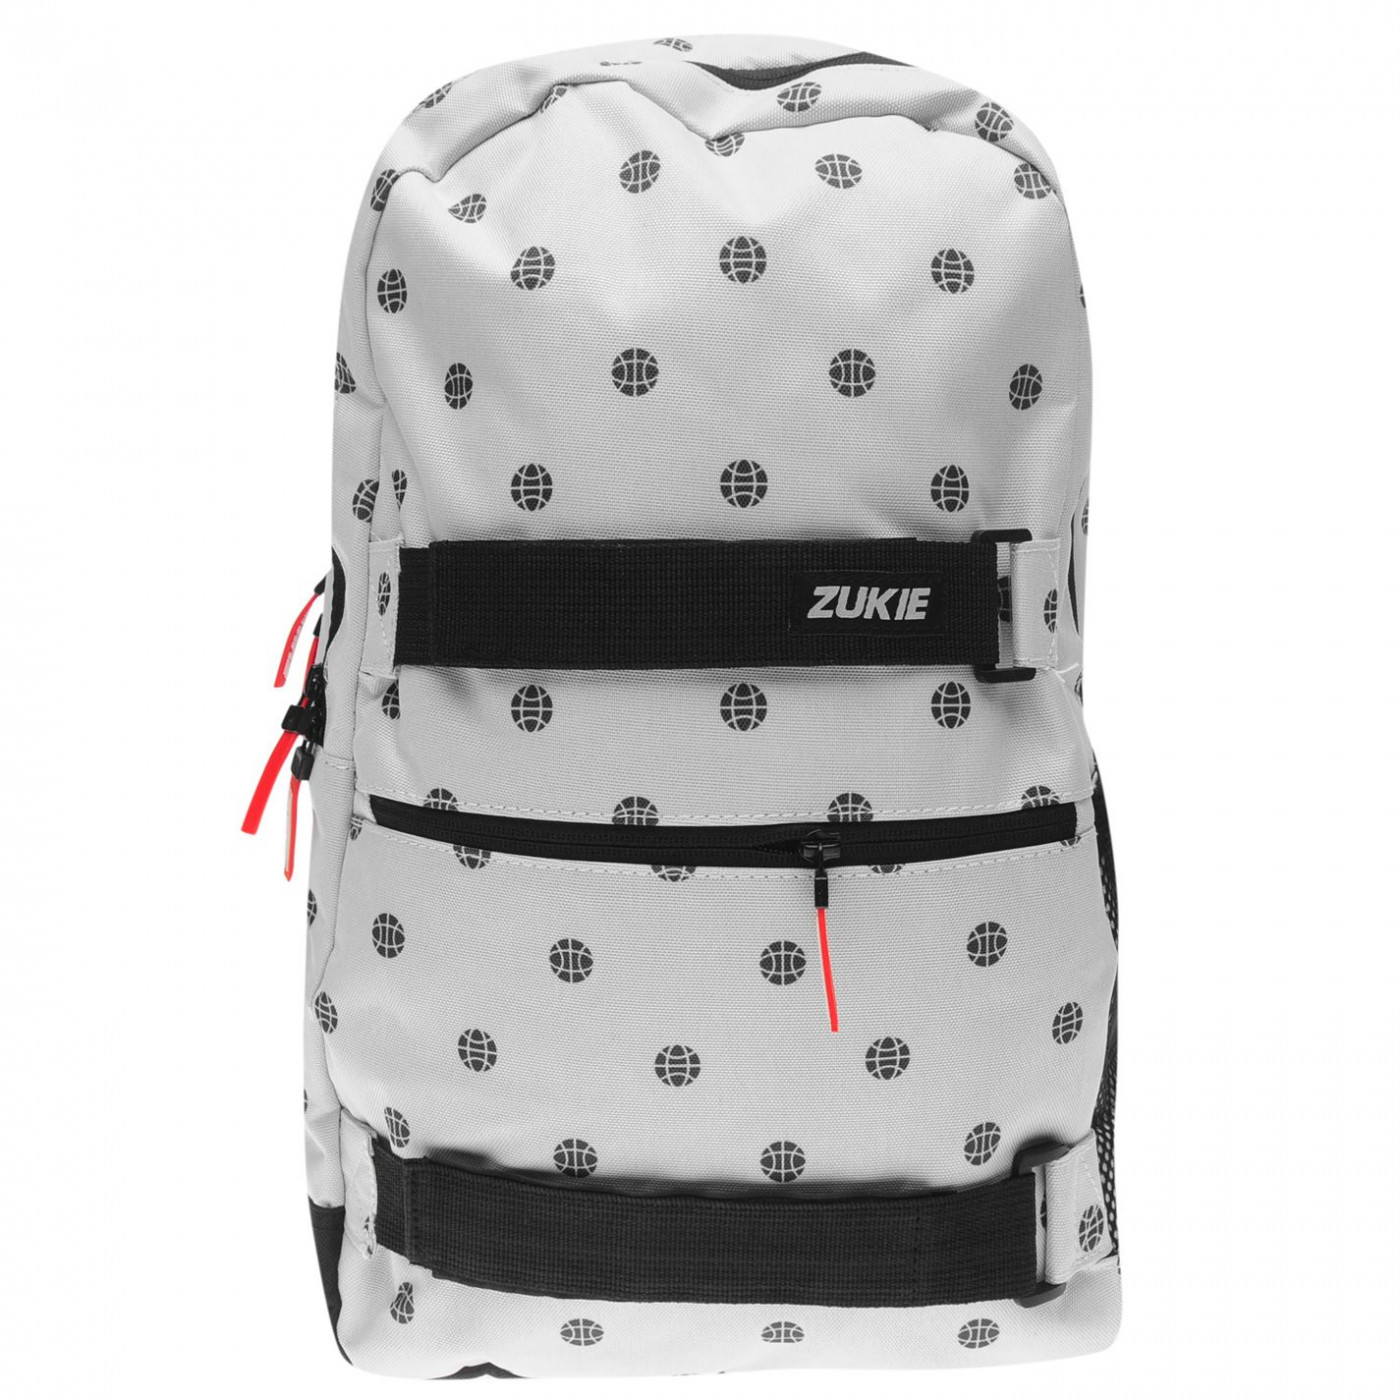 Zukie Skate Pattern Backpack Mens